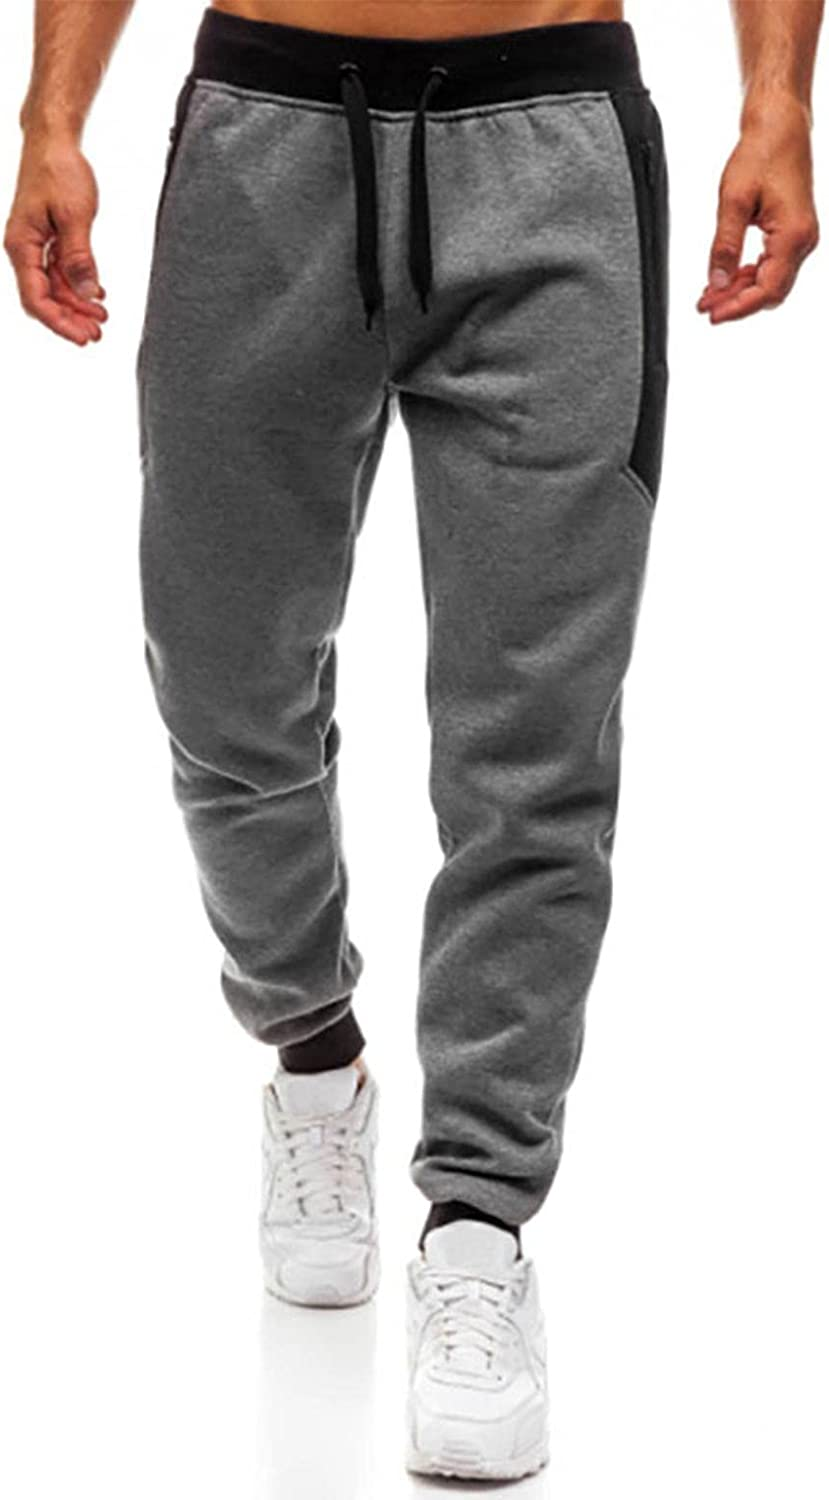 Tyoby Mens Joggers Sweatpants with Pockets Slim Fit Athletic Workout Pants Gym Training Running Ankle Pants